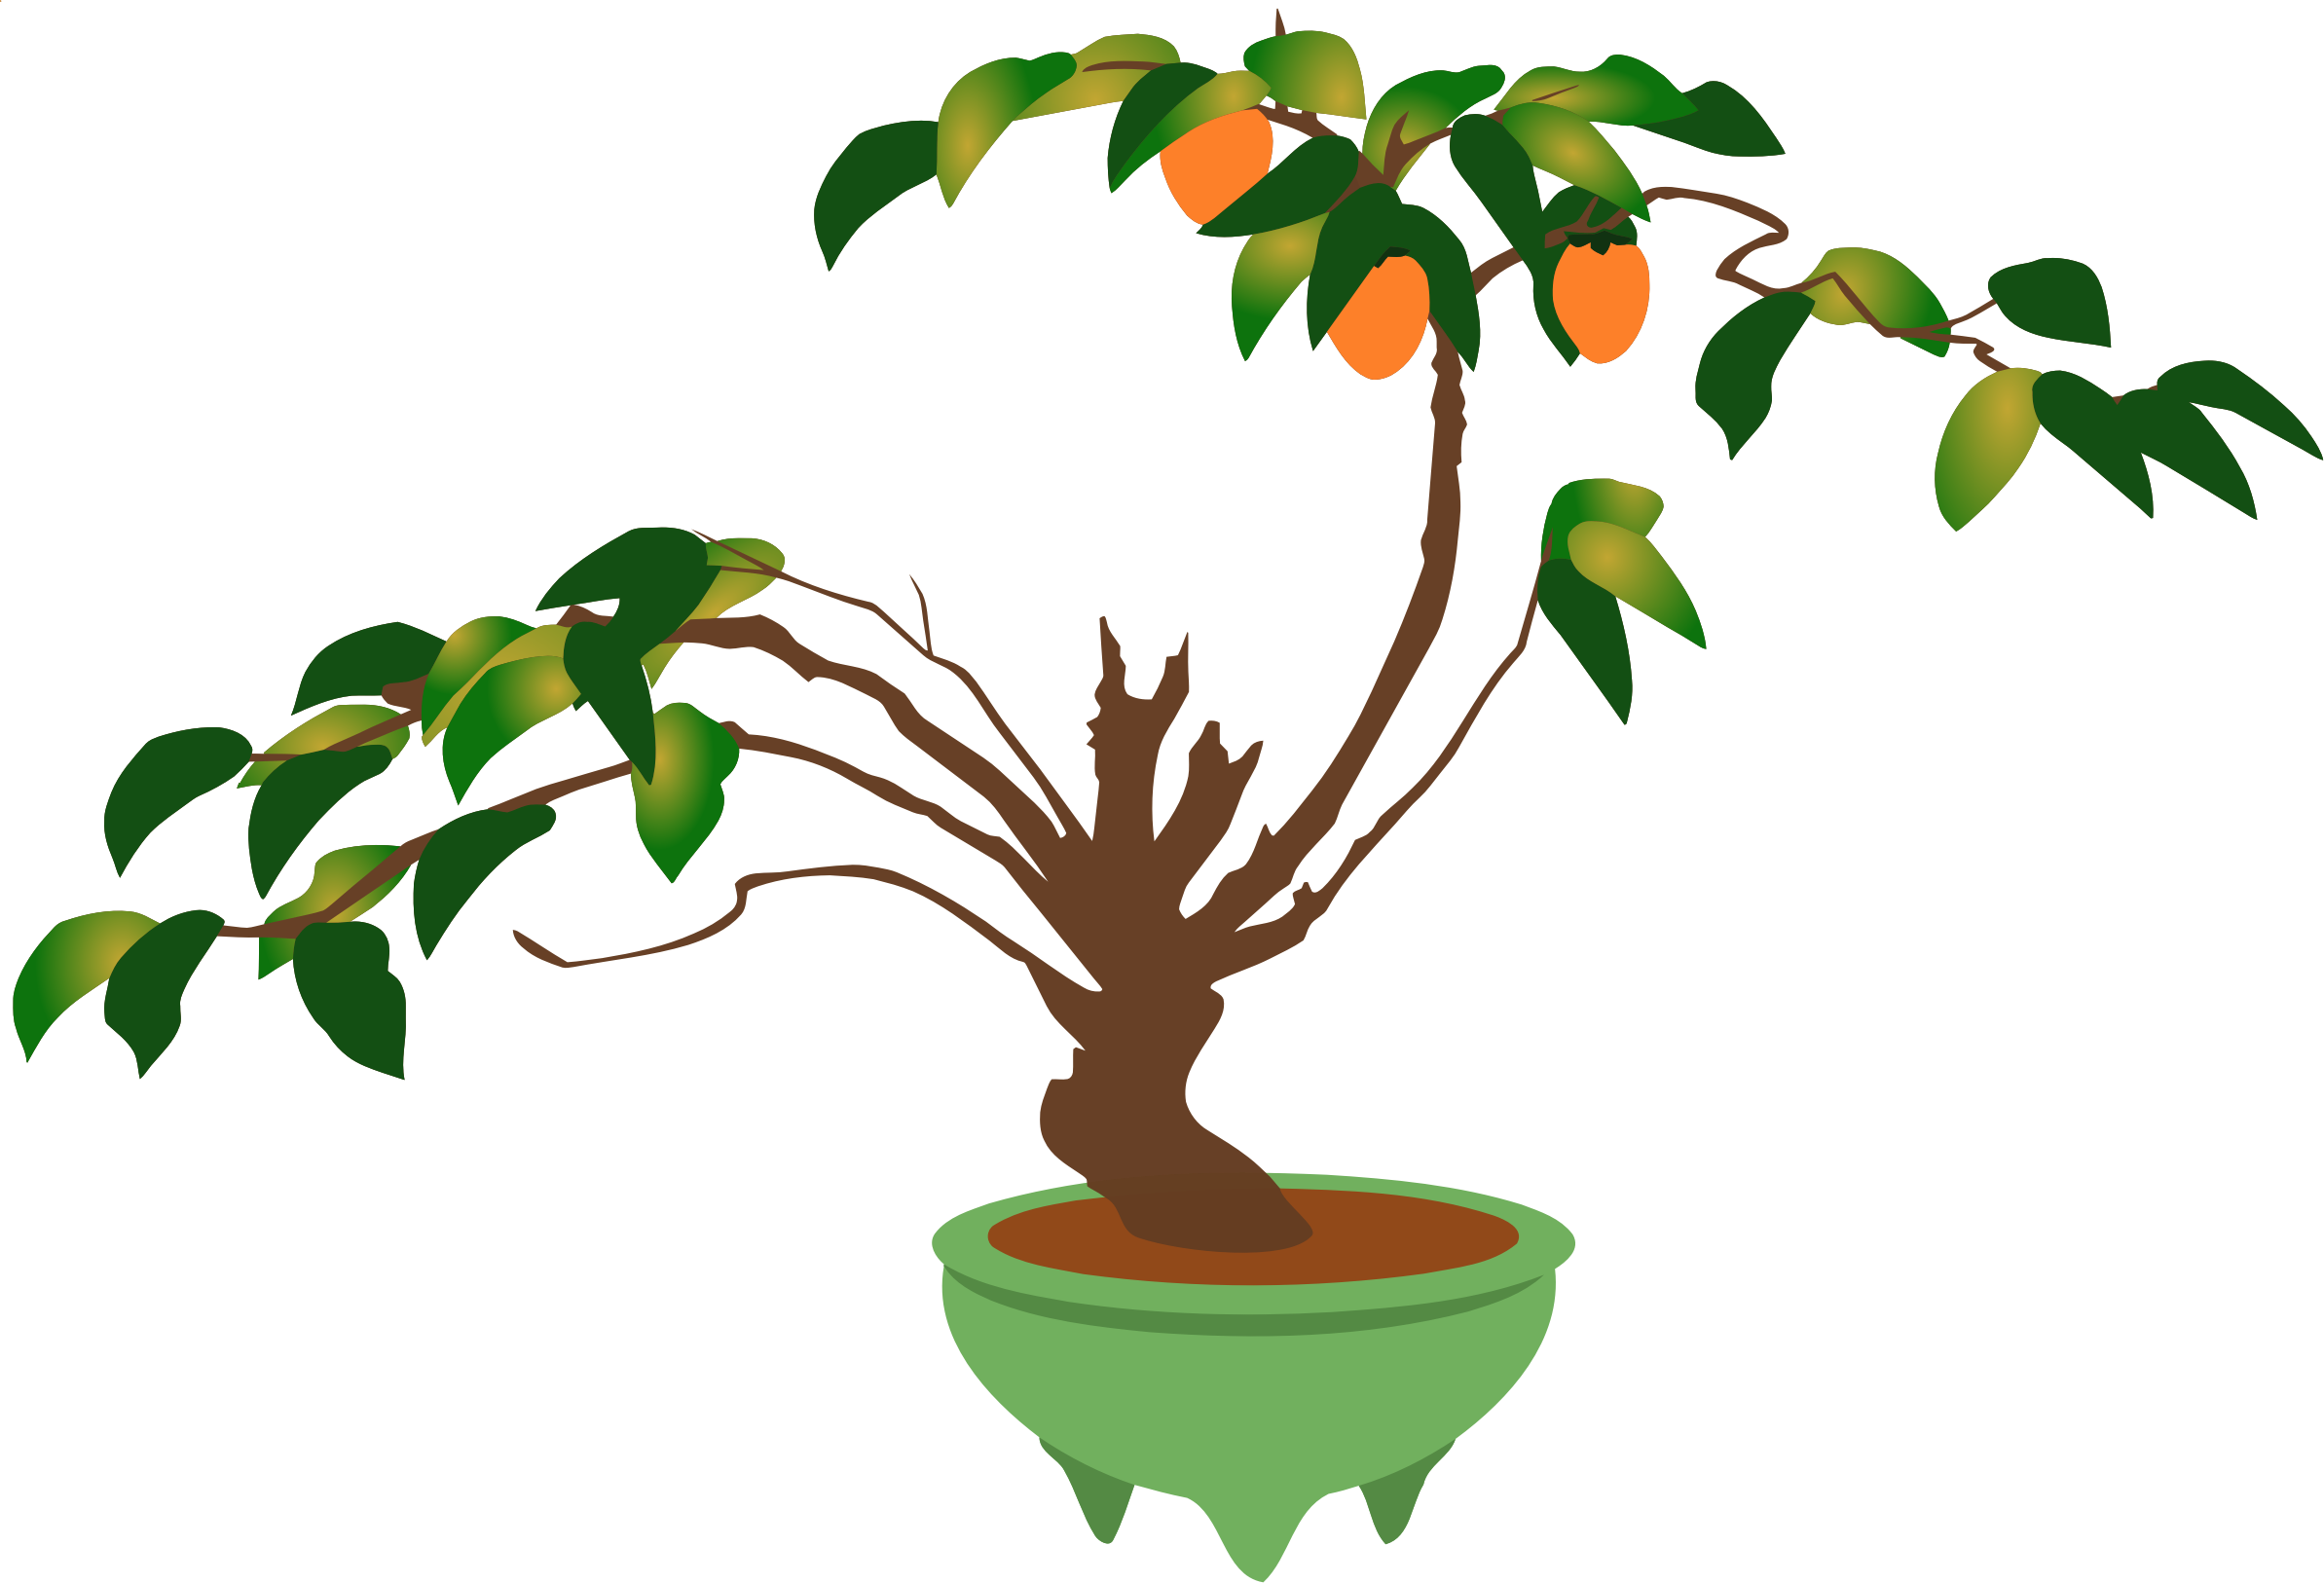 Persimmon bonsai tree by Firkin